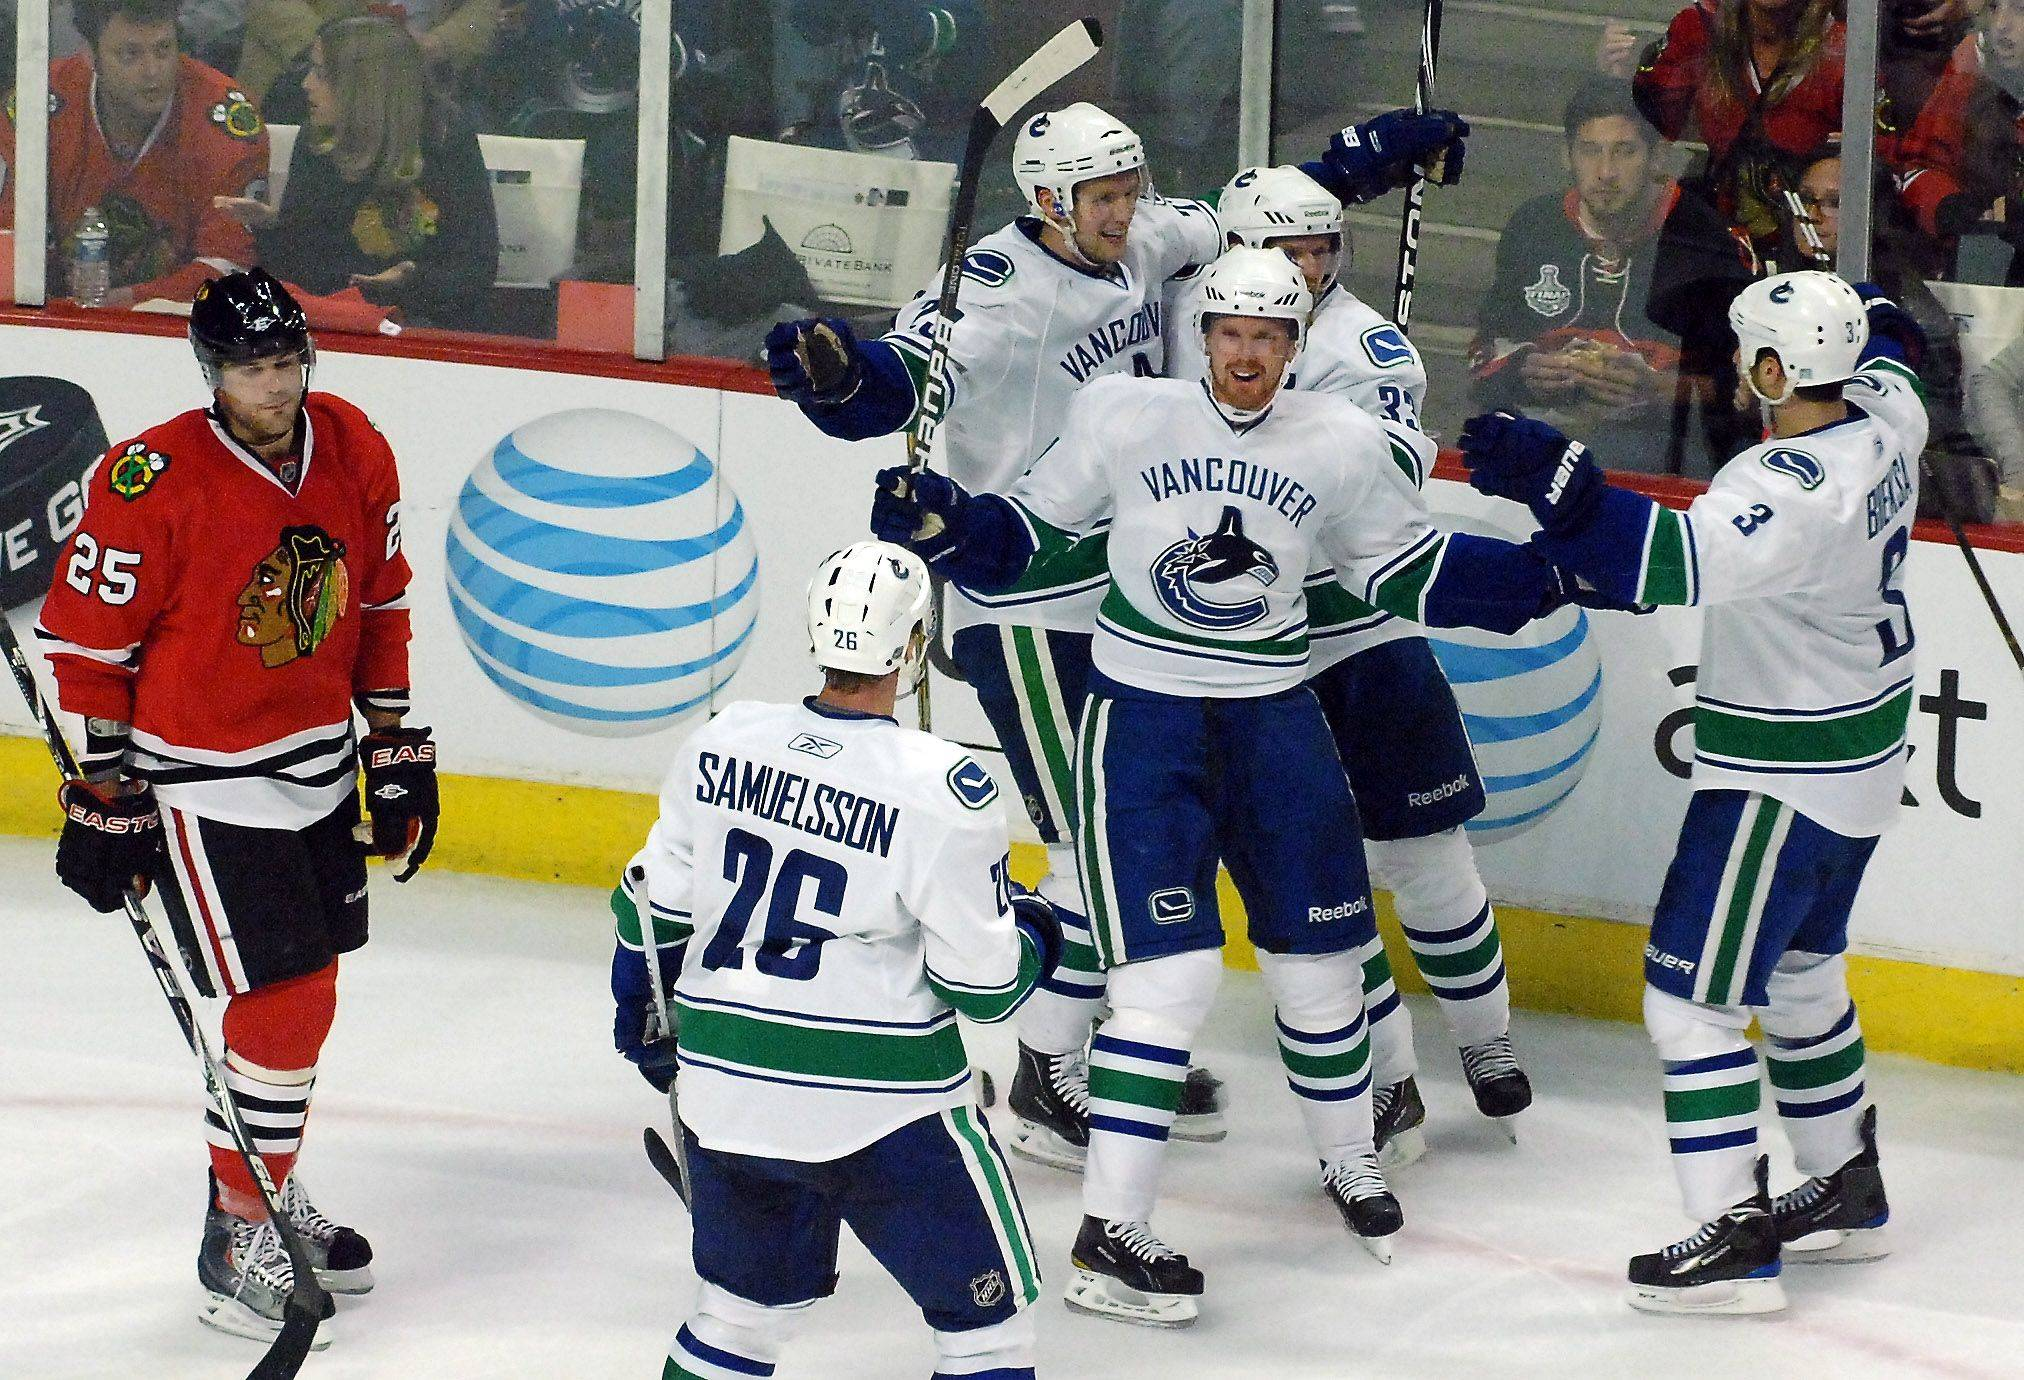 Vancouver Canucks left wing Daniel Sedin (22) and his teammates celebrate his second period goal near Chicago Blackhawks left wing Viktor Stalberg.